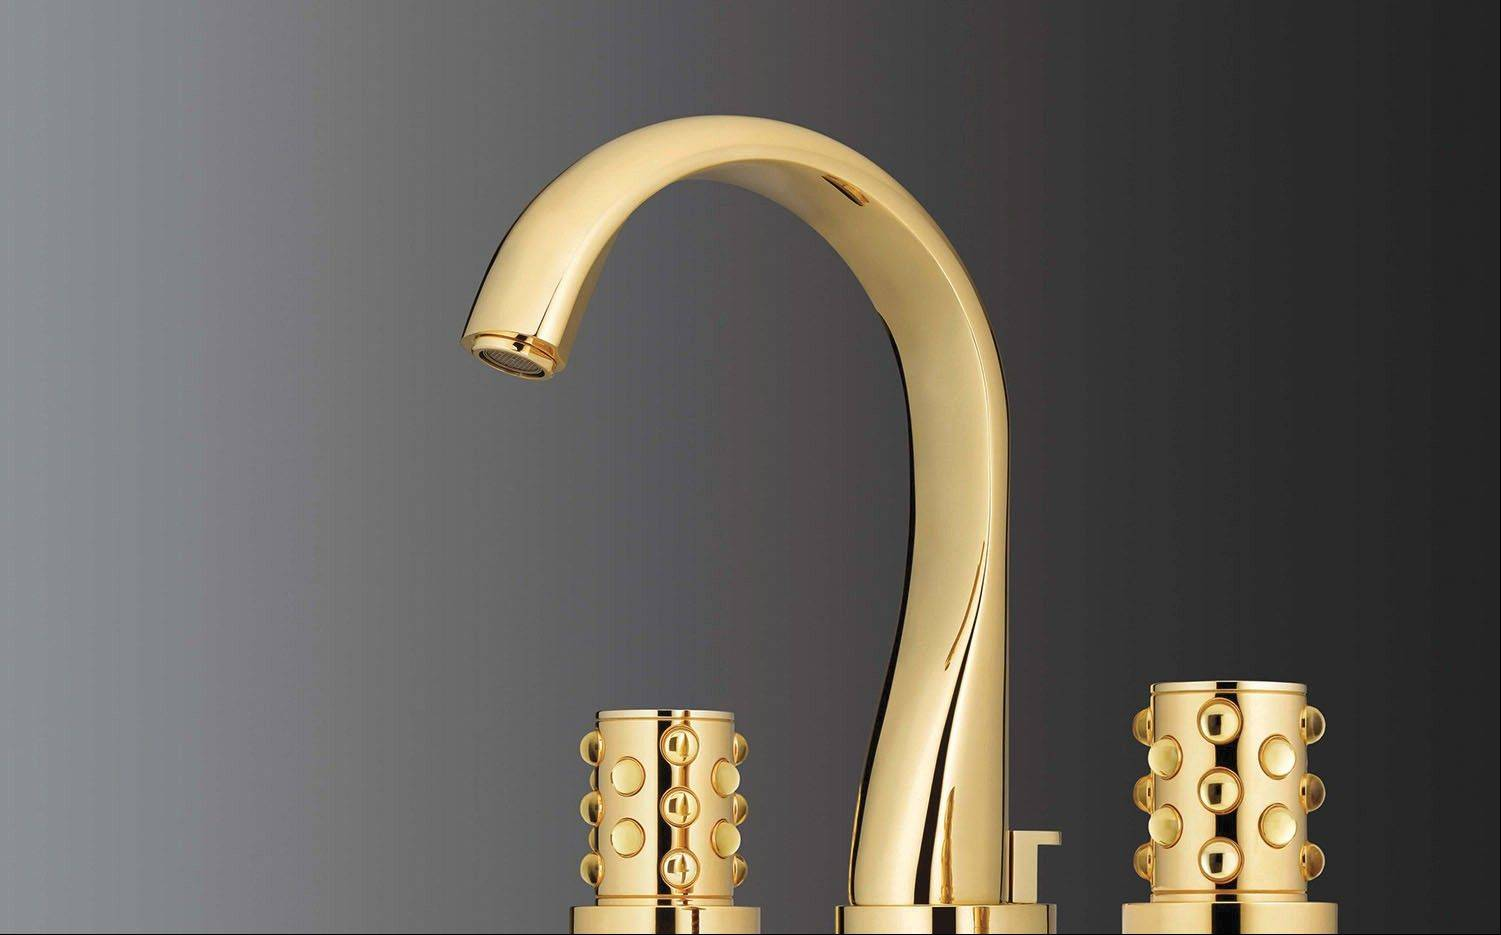 In the bath, a sculptural faucet demonstrates the regal, contemporary look of gold.